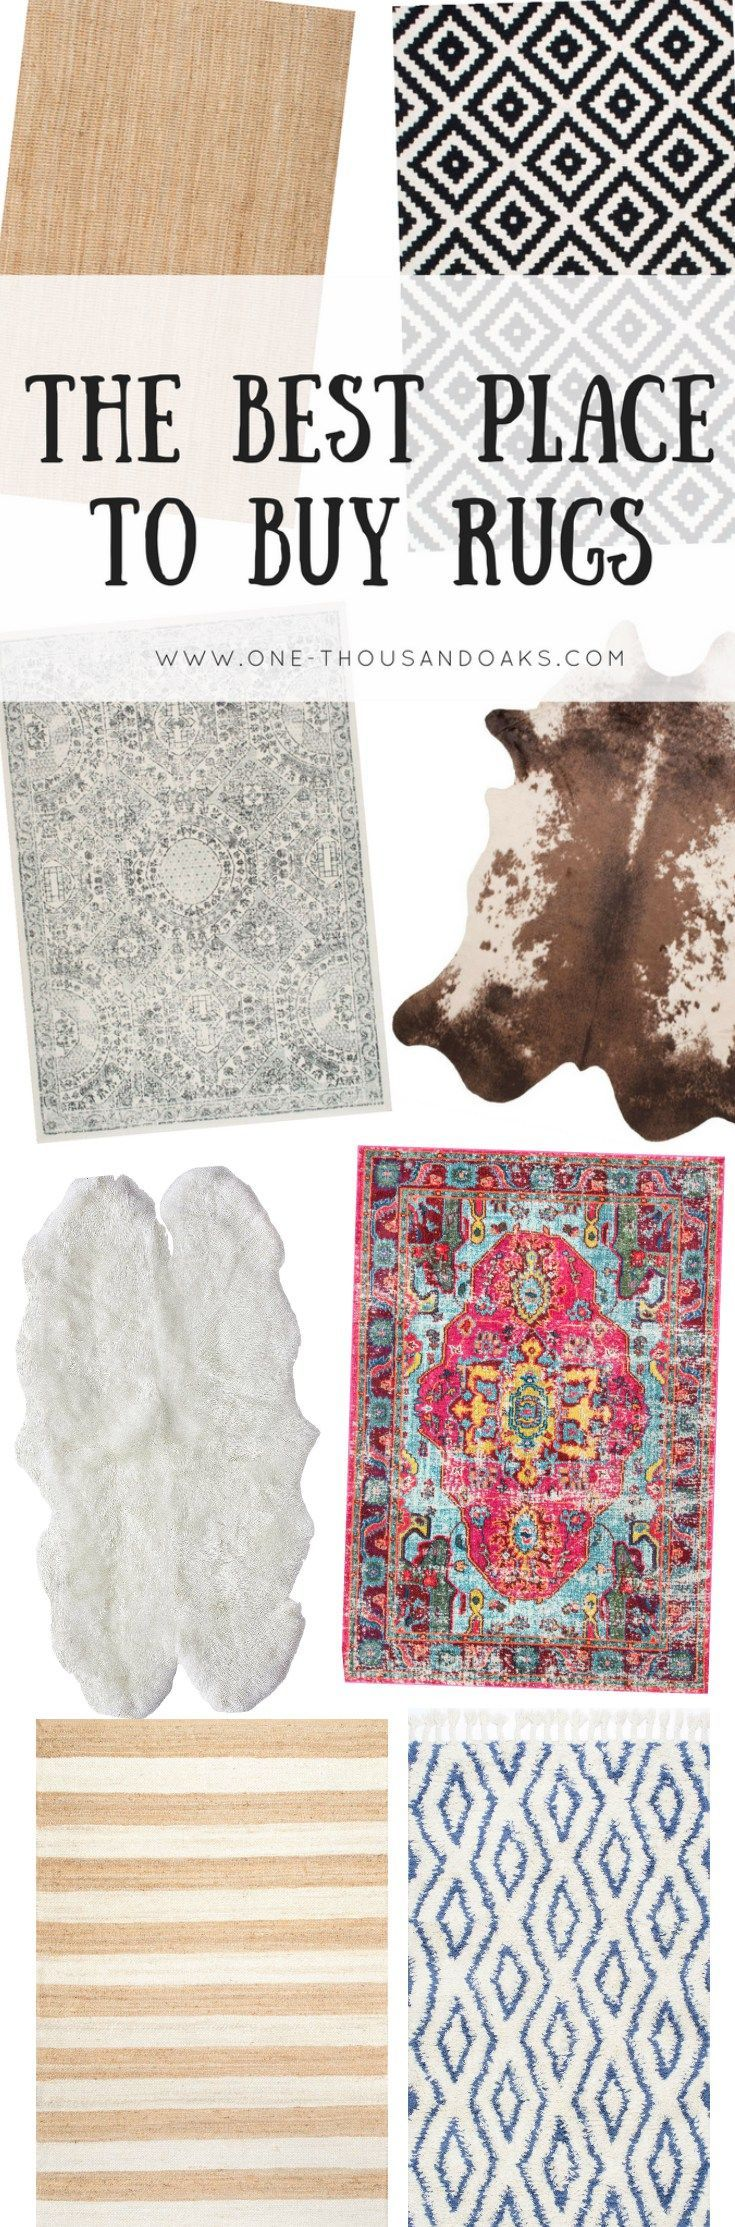 Best place to buy an area rug - The Best Place To Buy Rugs Affordable Area Rugs By One Thousand Oaks